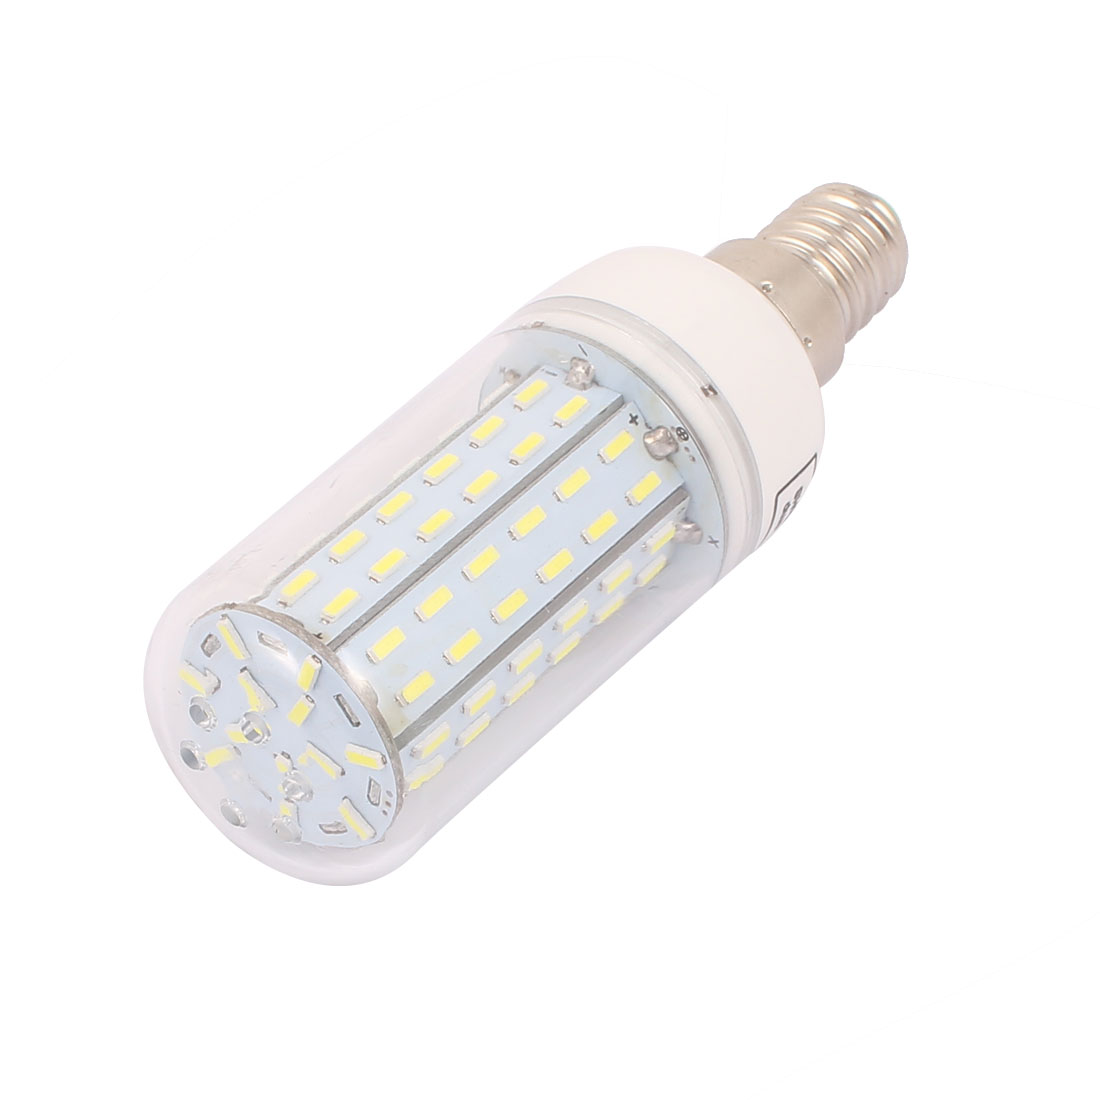 New Super Bright E14 9W 96 LEDs 4014 SMD Energy Saving Corn Bulb Lamp Pure White AC 110V